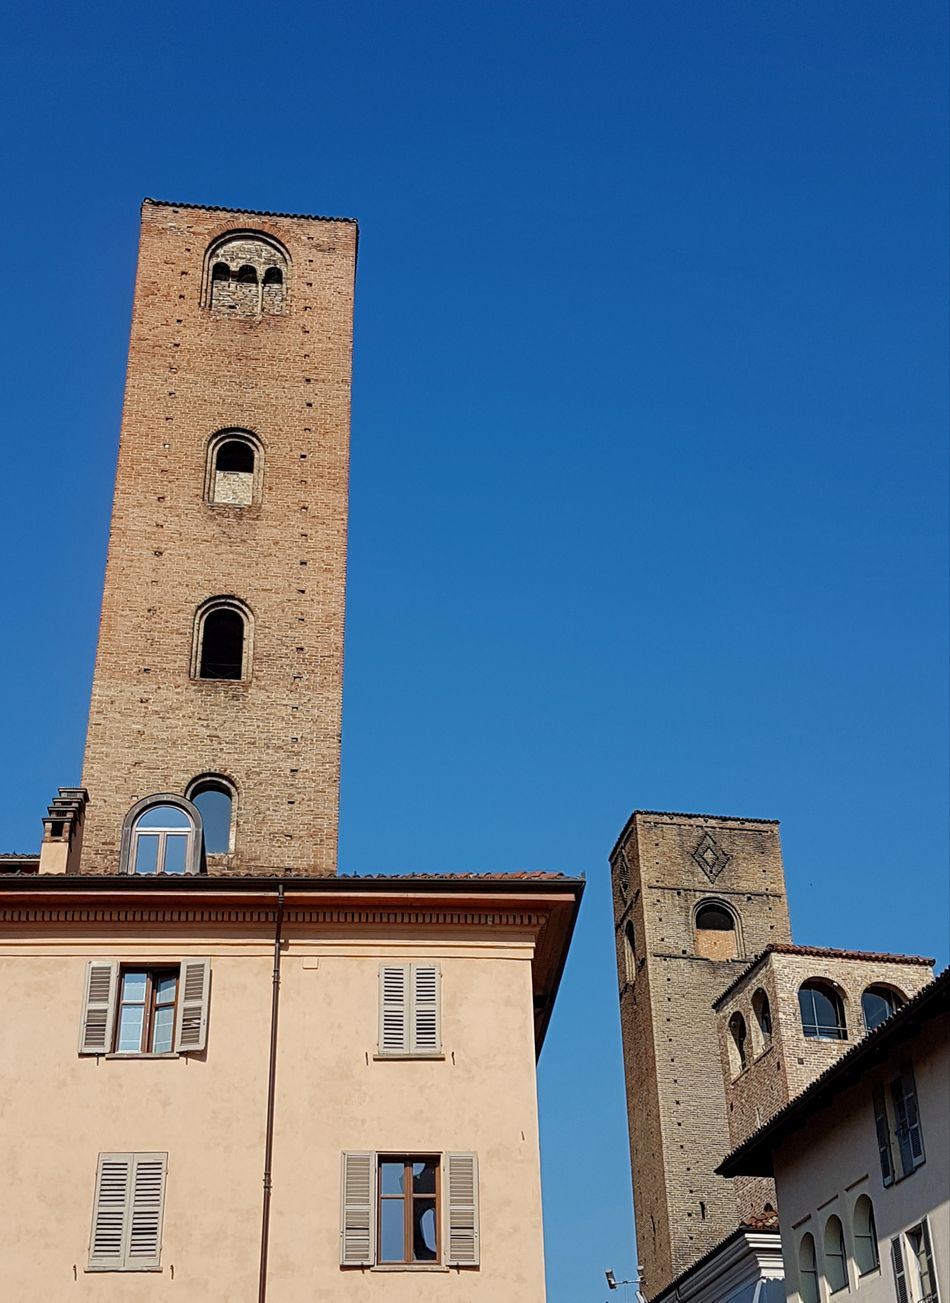 Blue Clear Sky Architecture Building Exterior Low Angle View Built Structure History No People Sky Day Outdoors Piedmont Italy Langhe Medieval Towers Historic City Travel Destinations